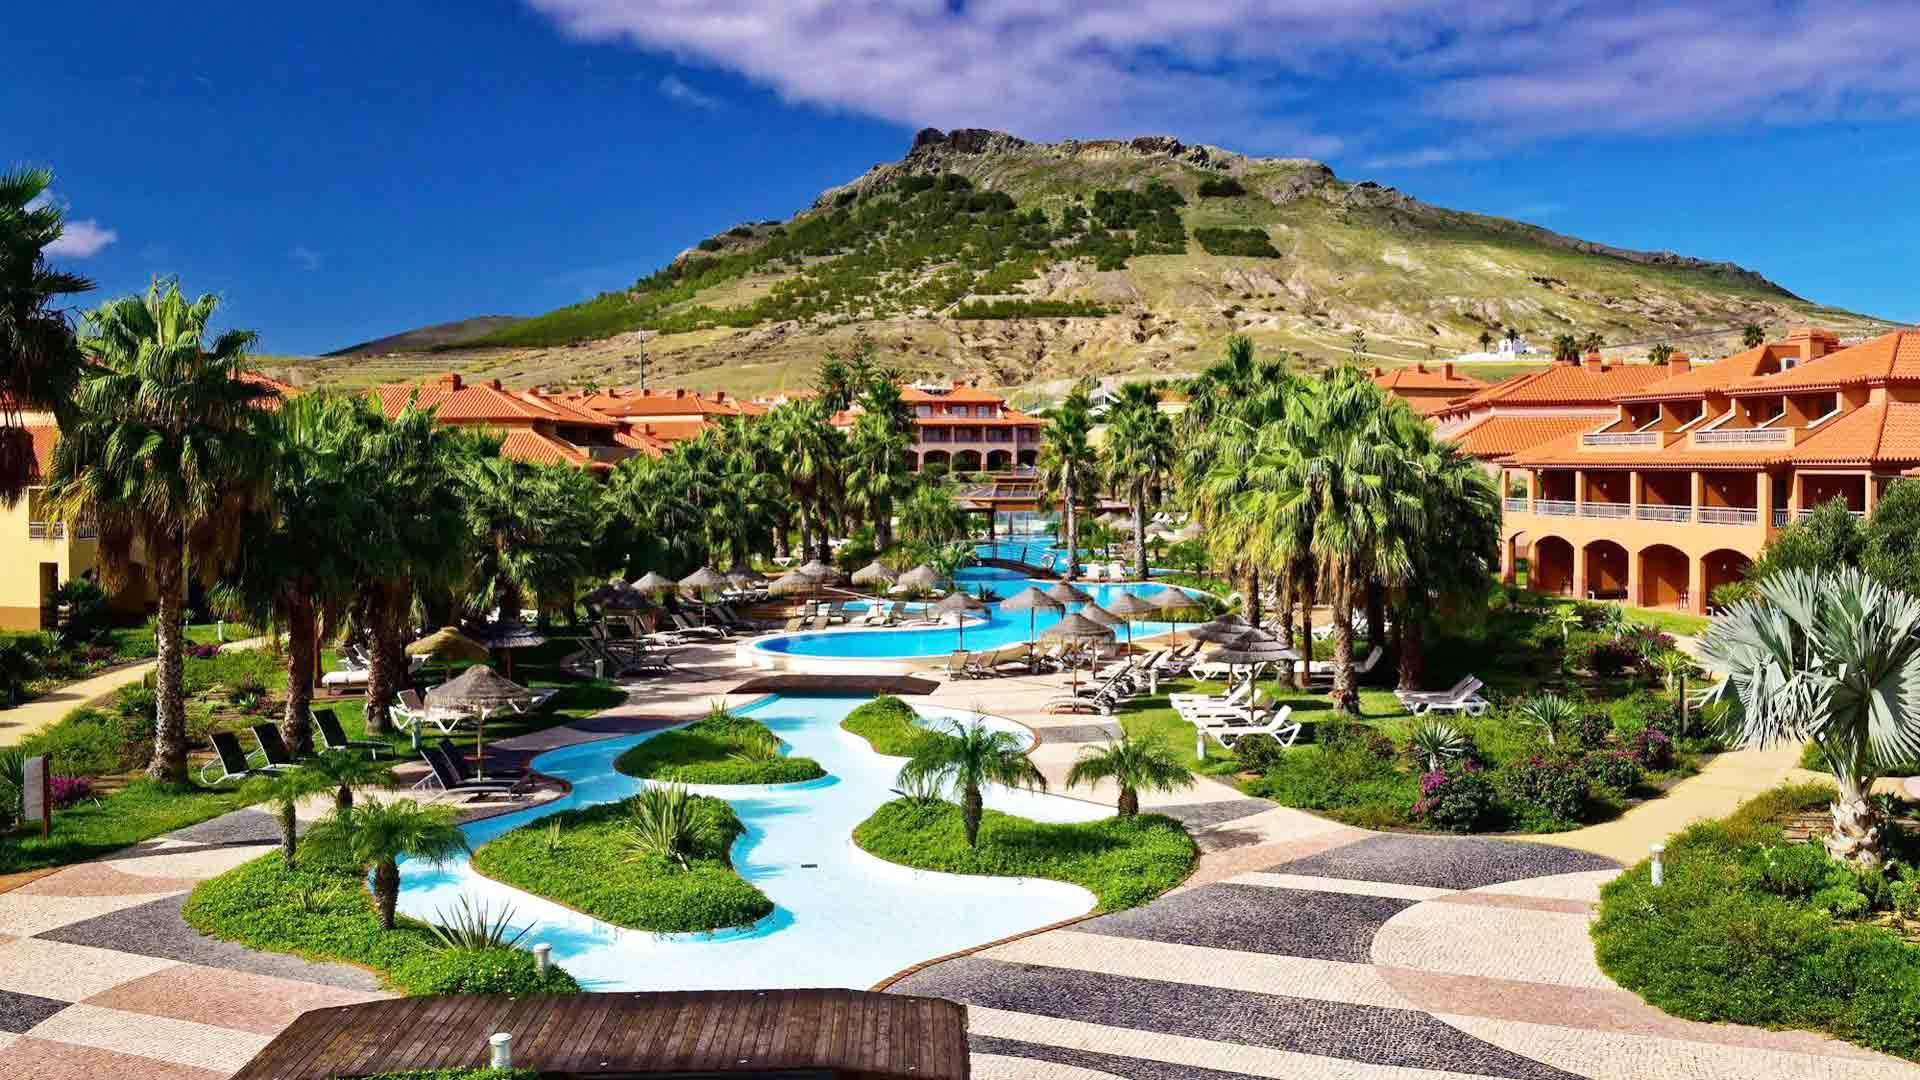 Pestana Porto Santo madeira - Photo 4